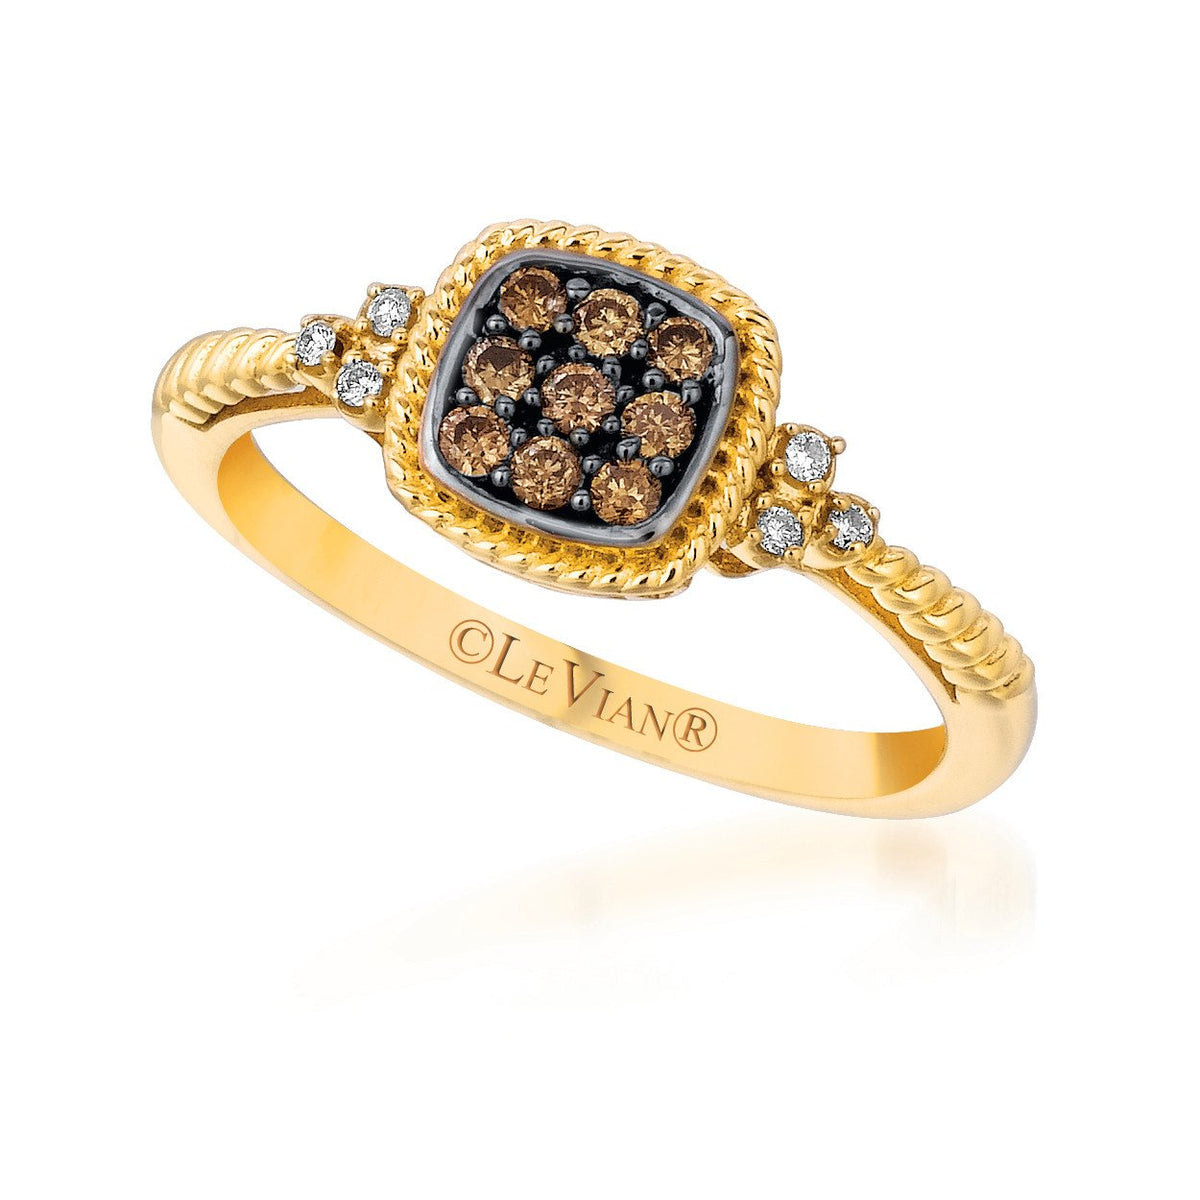 petite le vian® ring featuring 1/6 cts